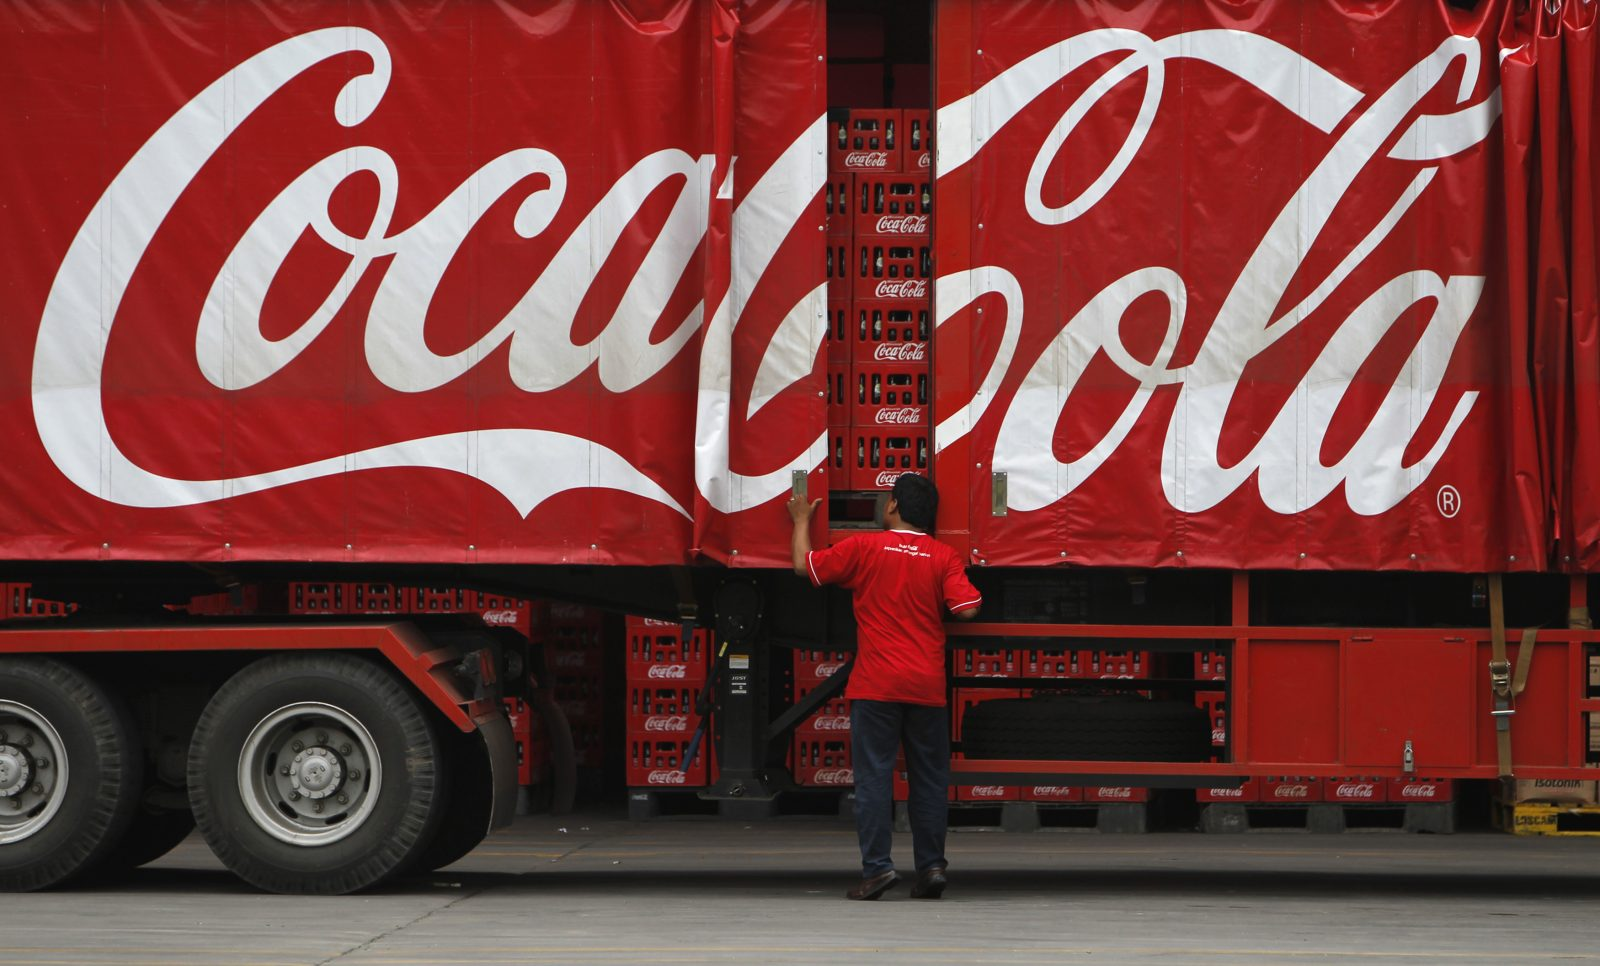 A worker checks his truck at PT Coca-Cola Amatil Indonesia's factory in Cibitung, Indonesia's West Java province, February 24, 2011. The Australian-based bottler and distributor for Coca Cola across Oceania had invested AUD$100 million ($101 million) in Indonesia over three years, doubling the company's investment in the country, Business Service Director Bruce Waterfield said during a media tour at the factory on Thursday.